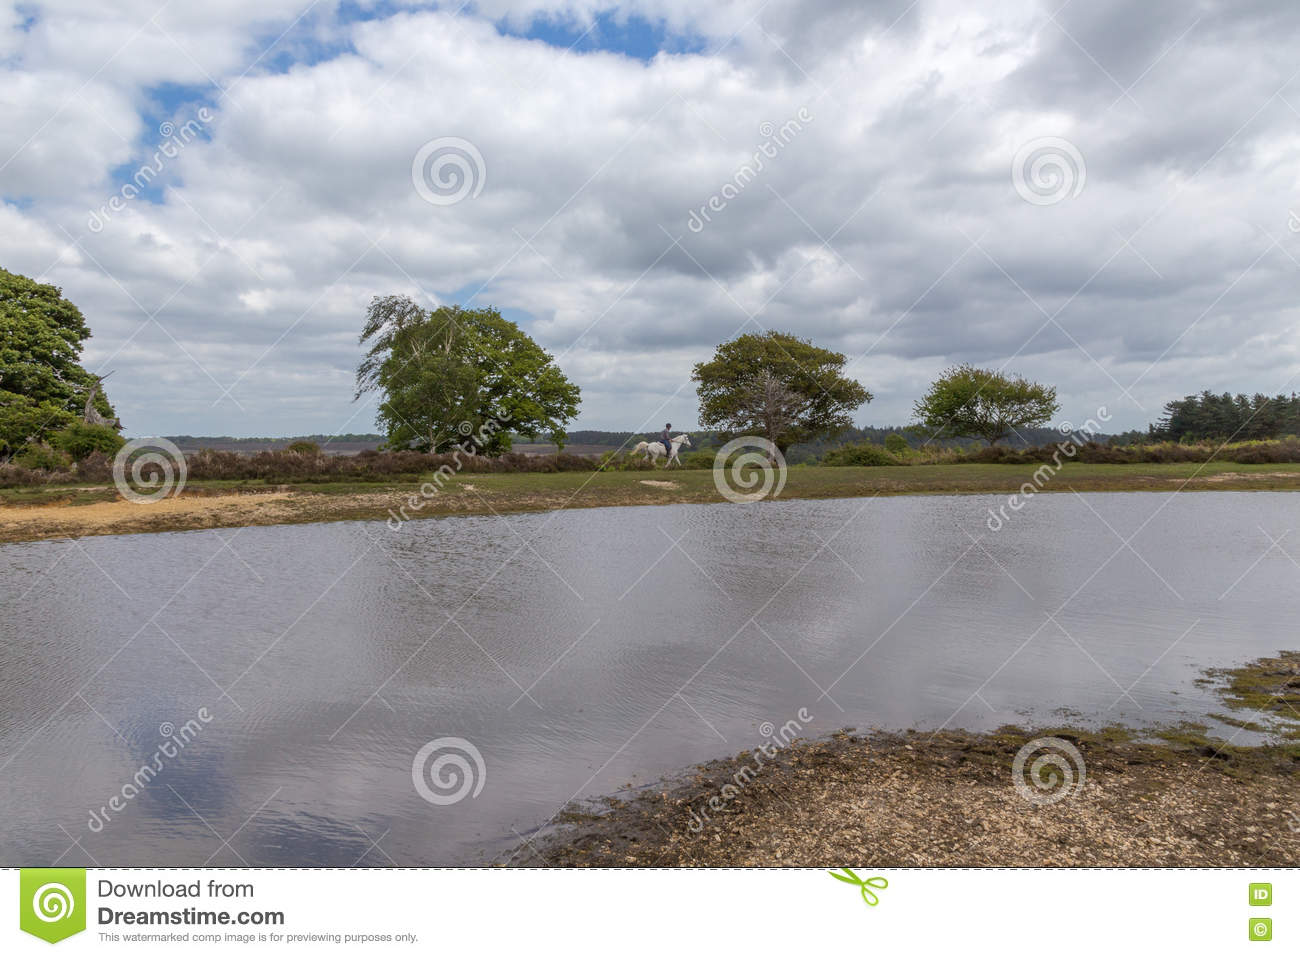 New Forest landscape with lake, trees and horse with rider